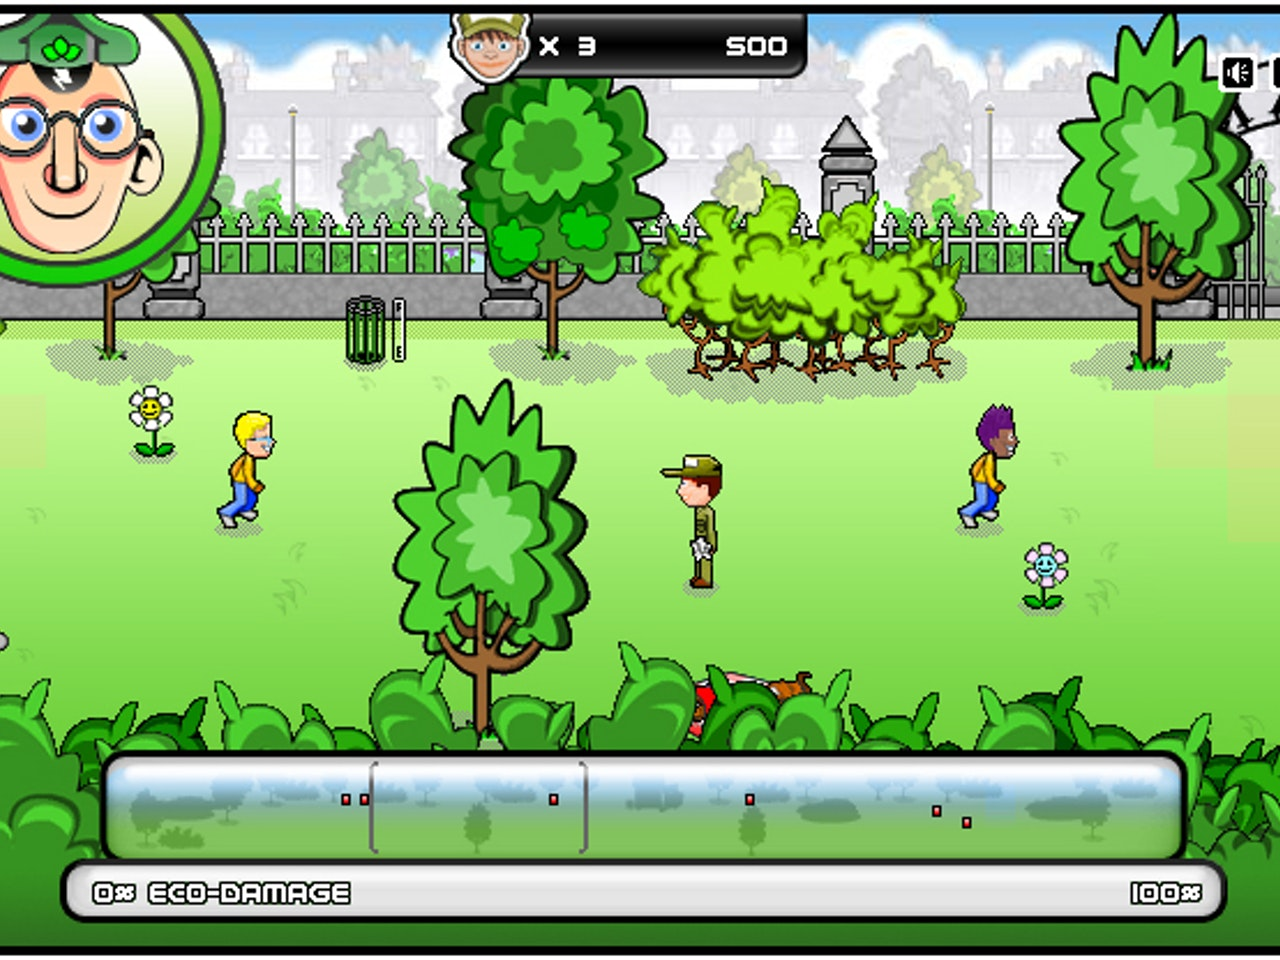 park sport  mobile website internet online game gaming educational healthy living droid mech technology smart happy humorous comical colourful graphic cartoon anime funny happy humorous comical colourful graphic cartoon anime